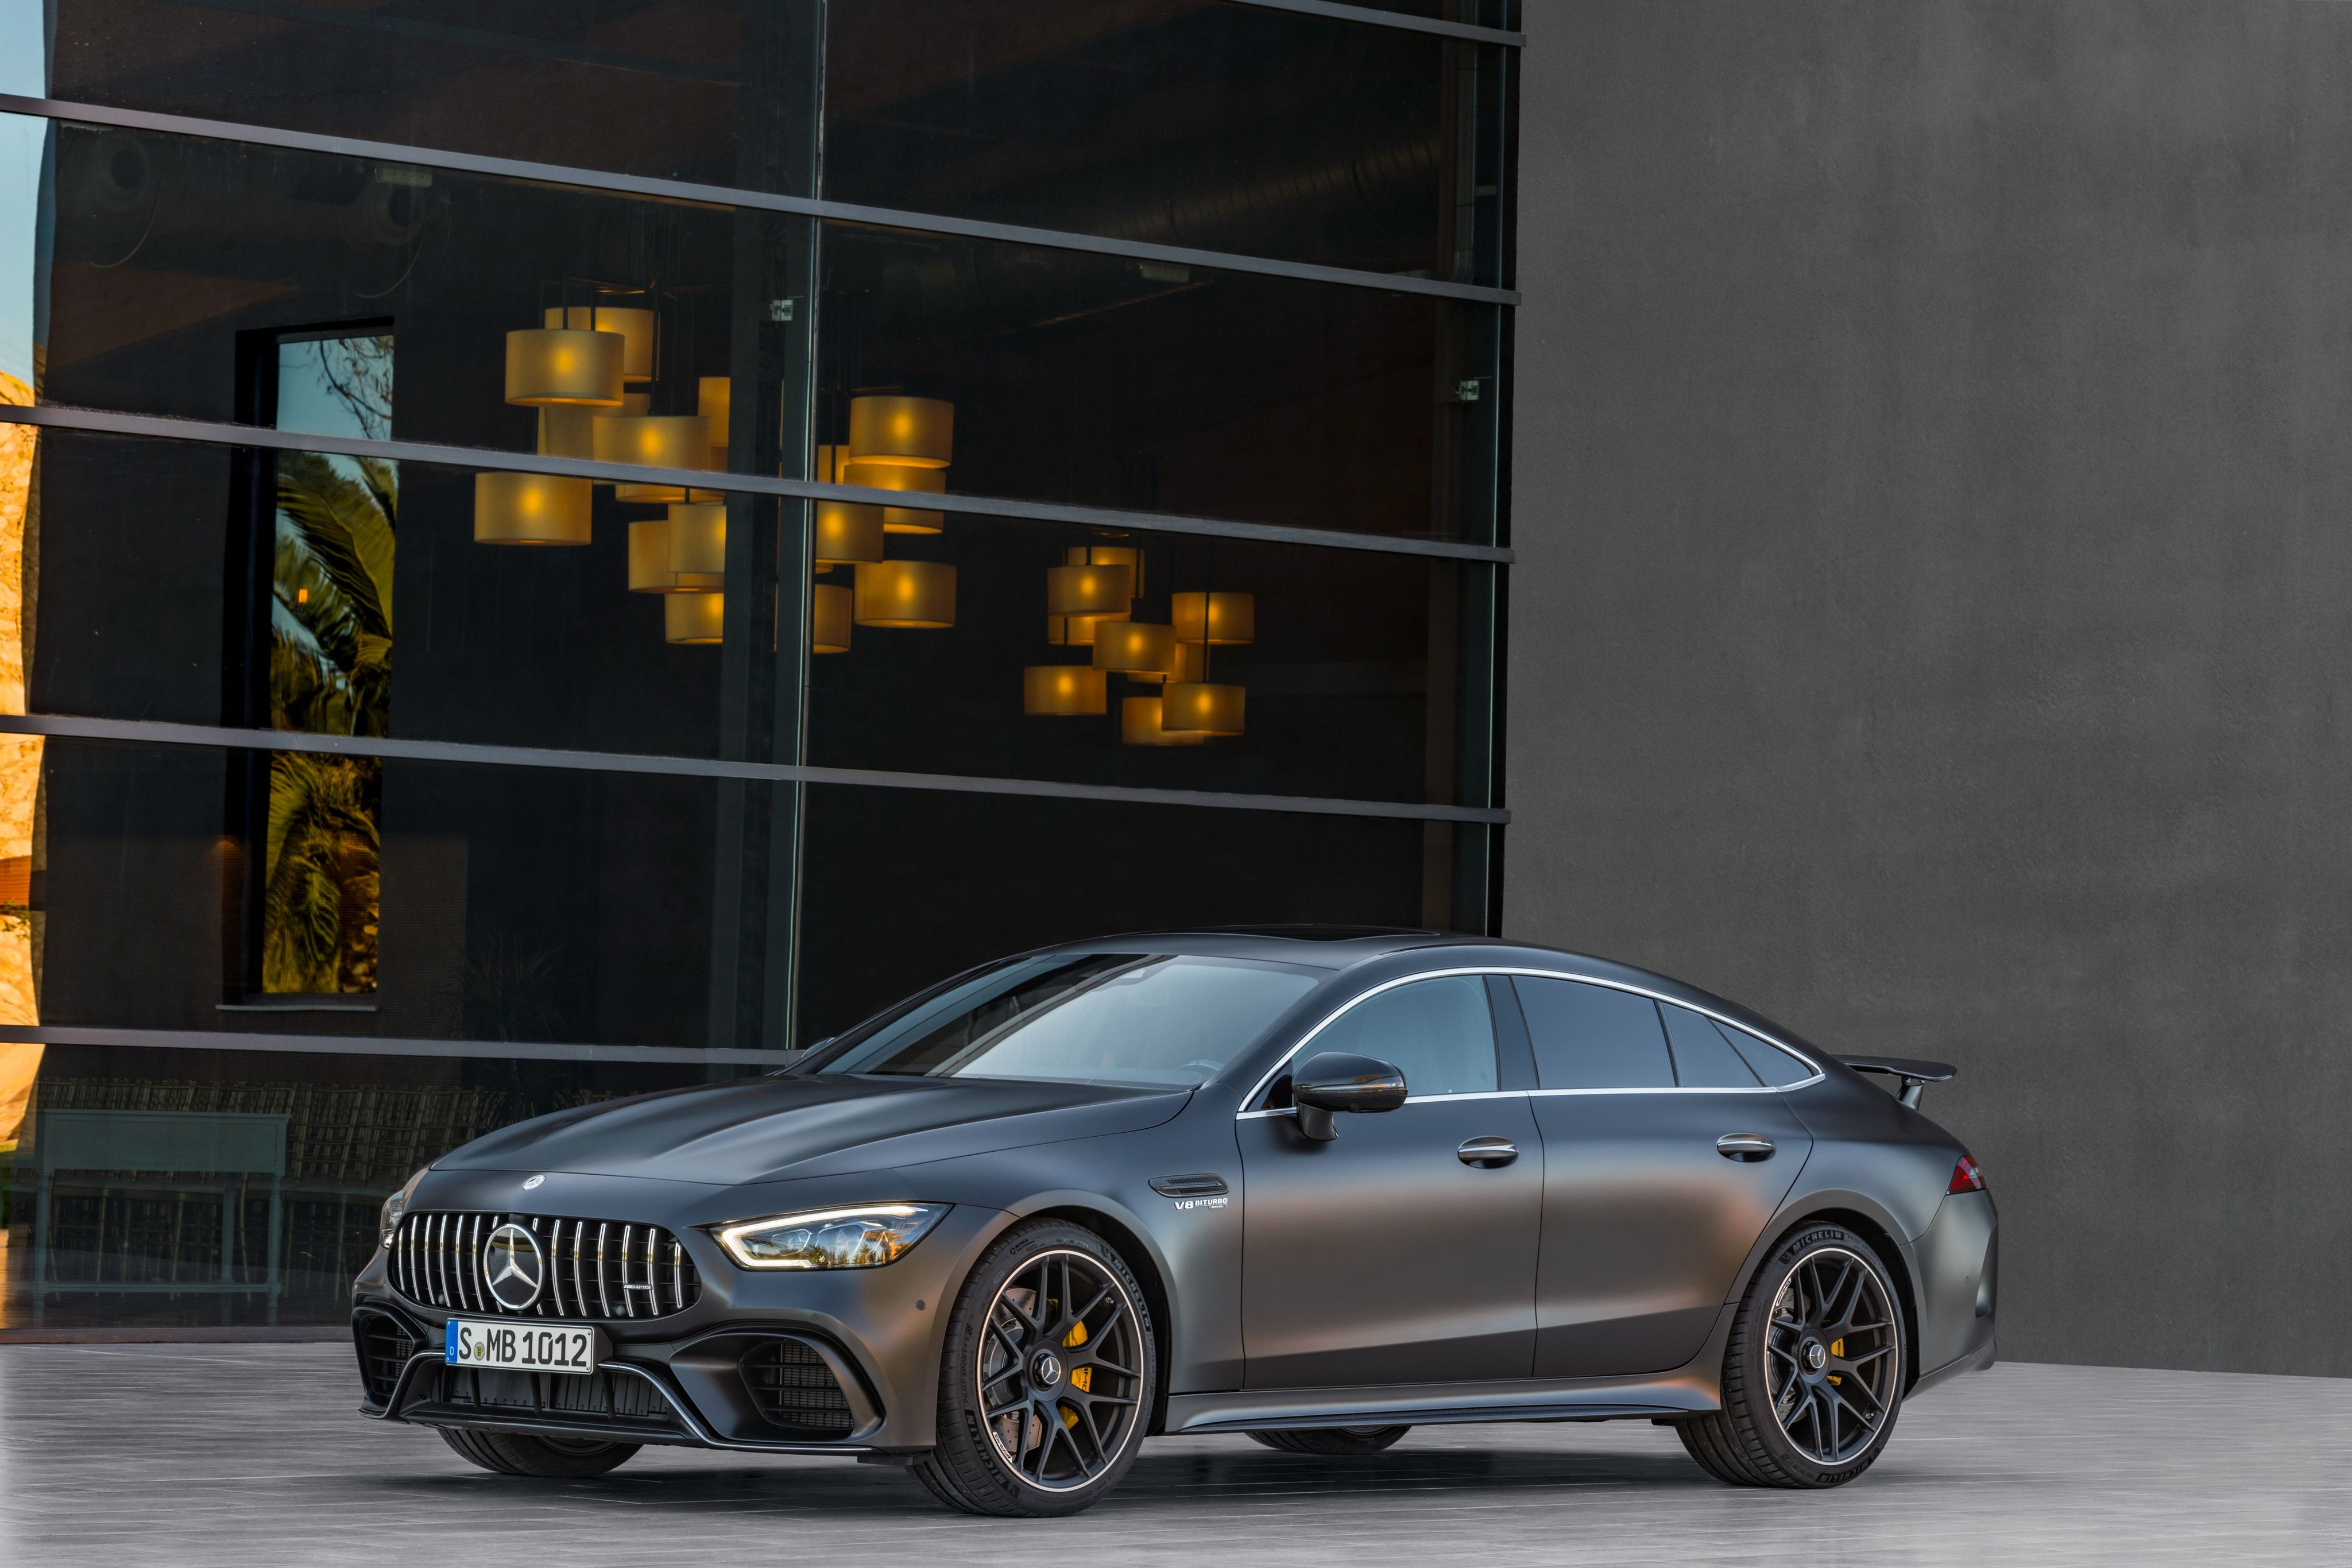 2018 Amg Gt 63 S 4matic 4 Door Coupe Mercedes Benz Amg